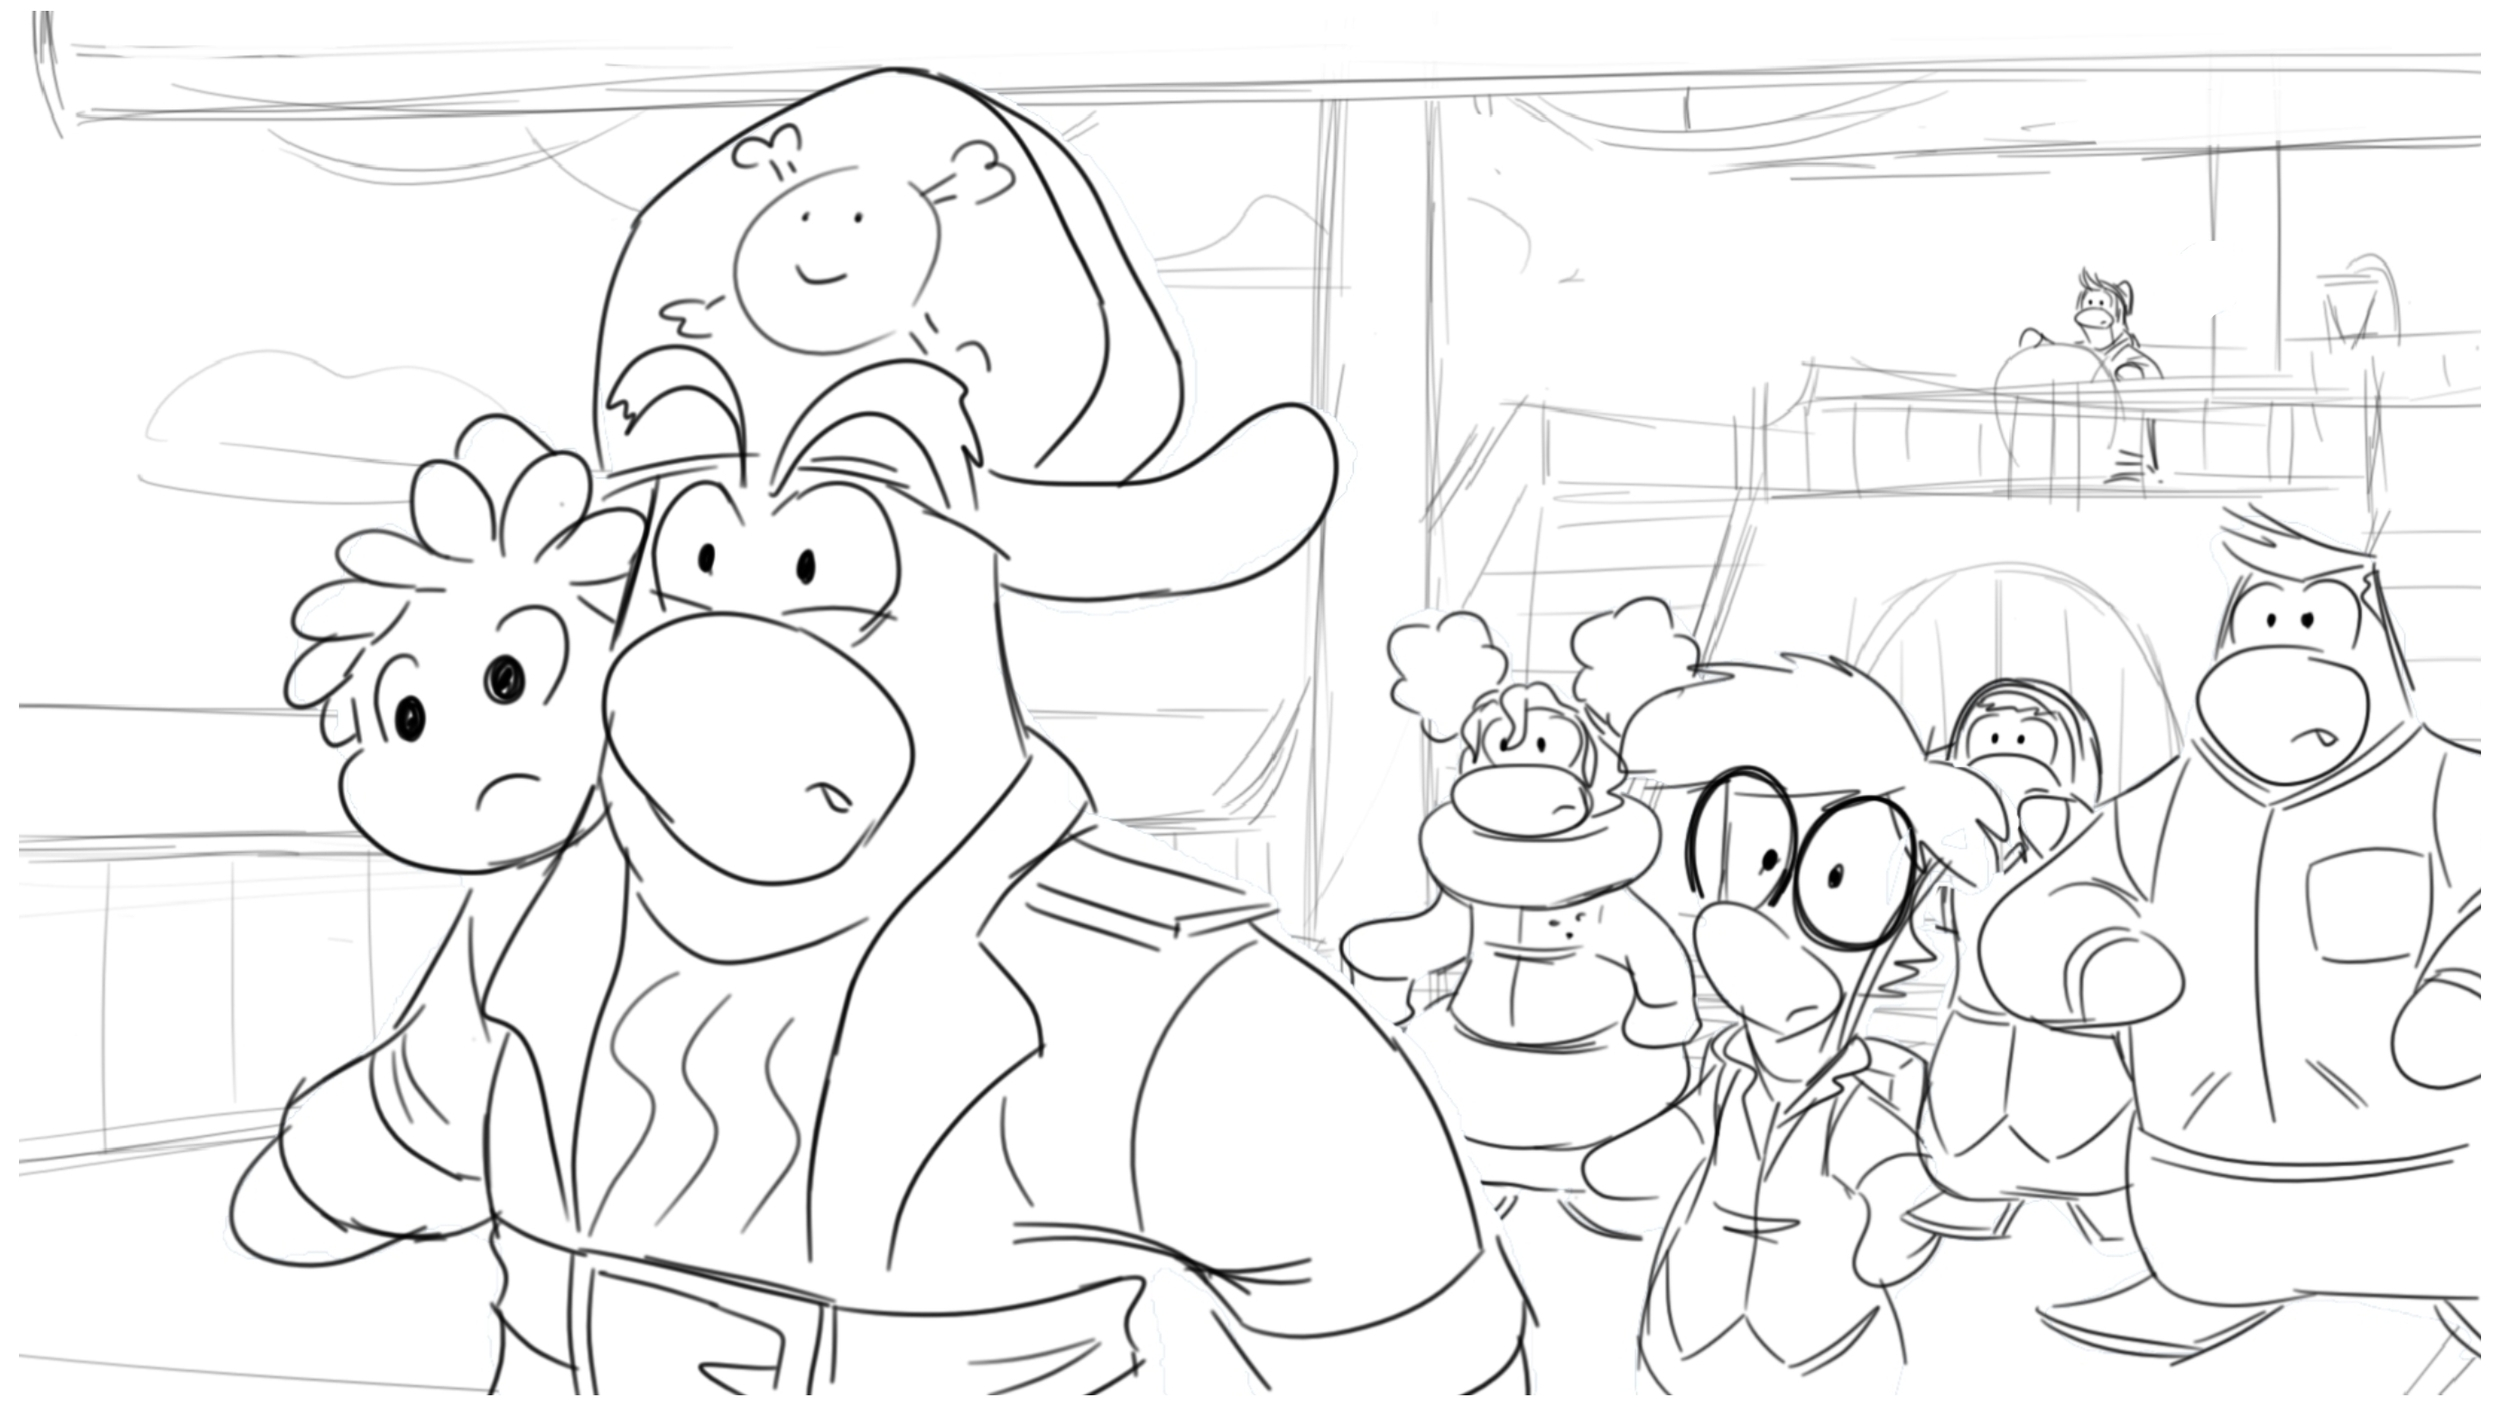 'Club Penguin' - Disney TV Special - 2014 - Lead Storyboard Artist